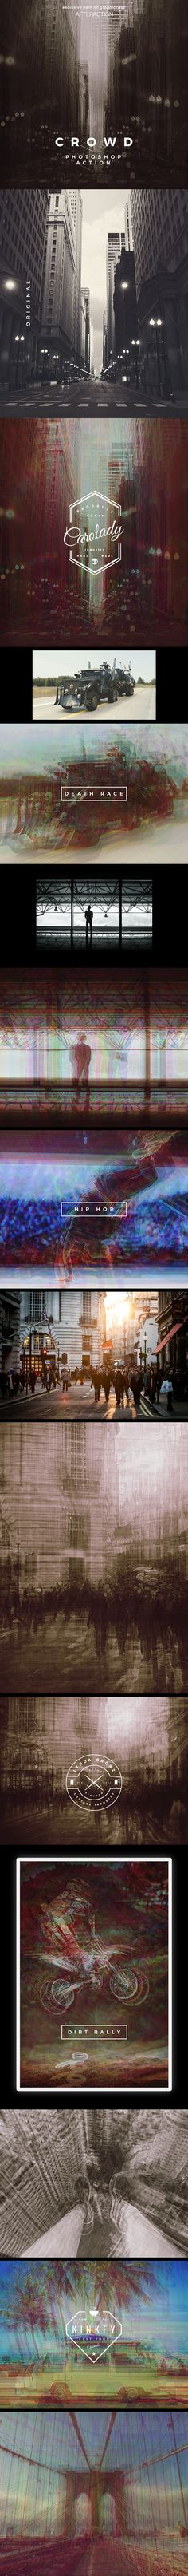 Crowd Action — Photoshop ATN #action #photo • Download ➝ https://graphicriver.net/item/crowd-photoshop-action/19606801?ref=pxcr